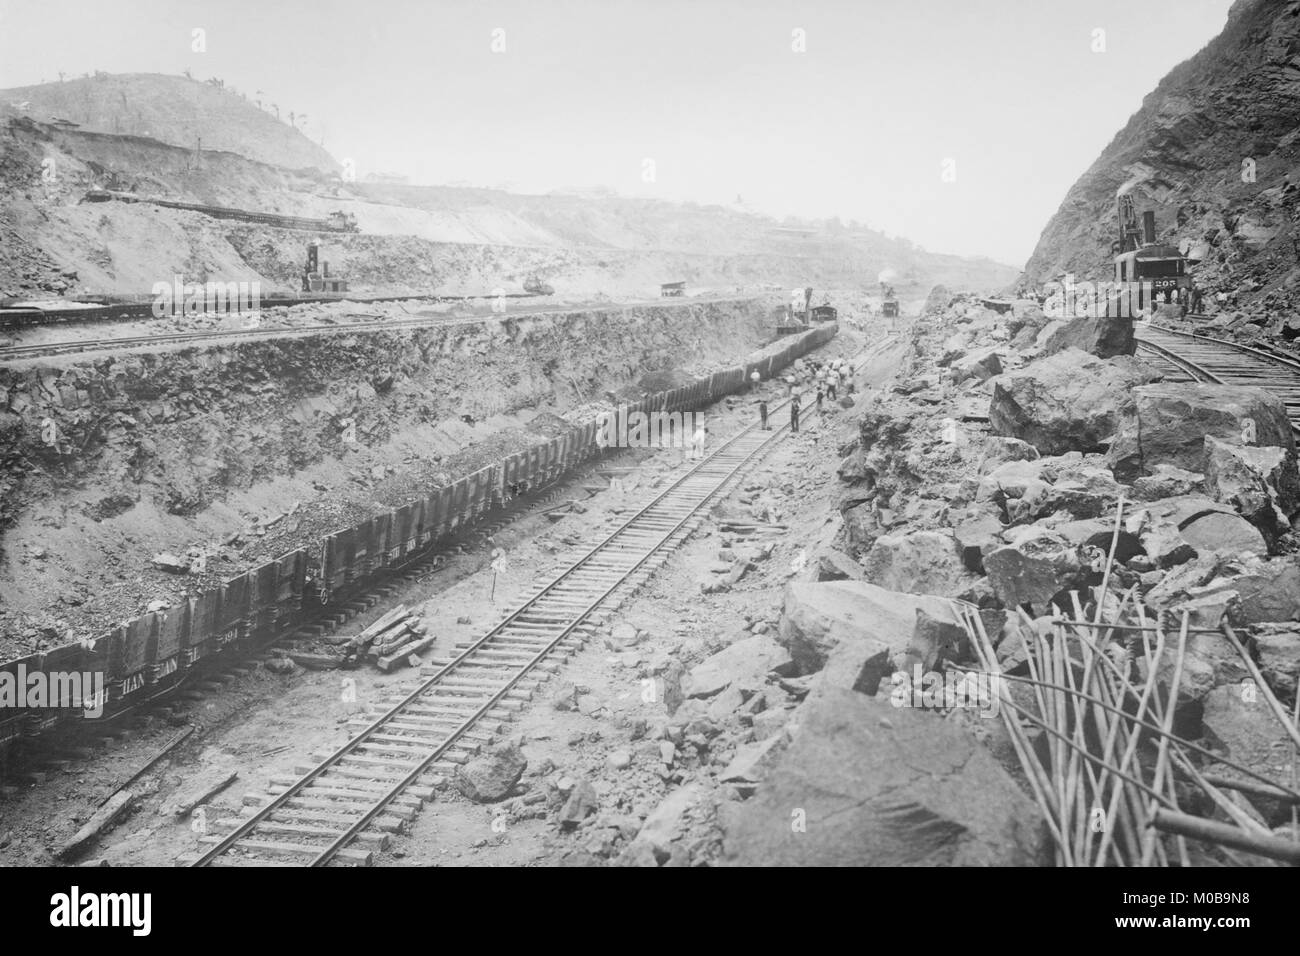 Twin Tracks Loaded with Earth Removed from Panama Canal Bed - Stock Image